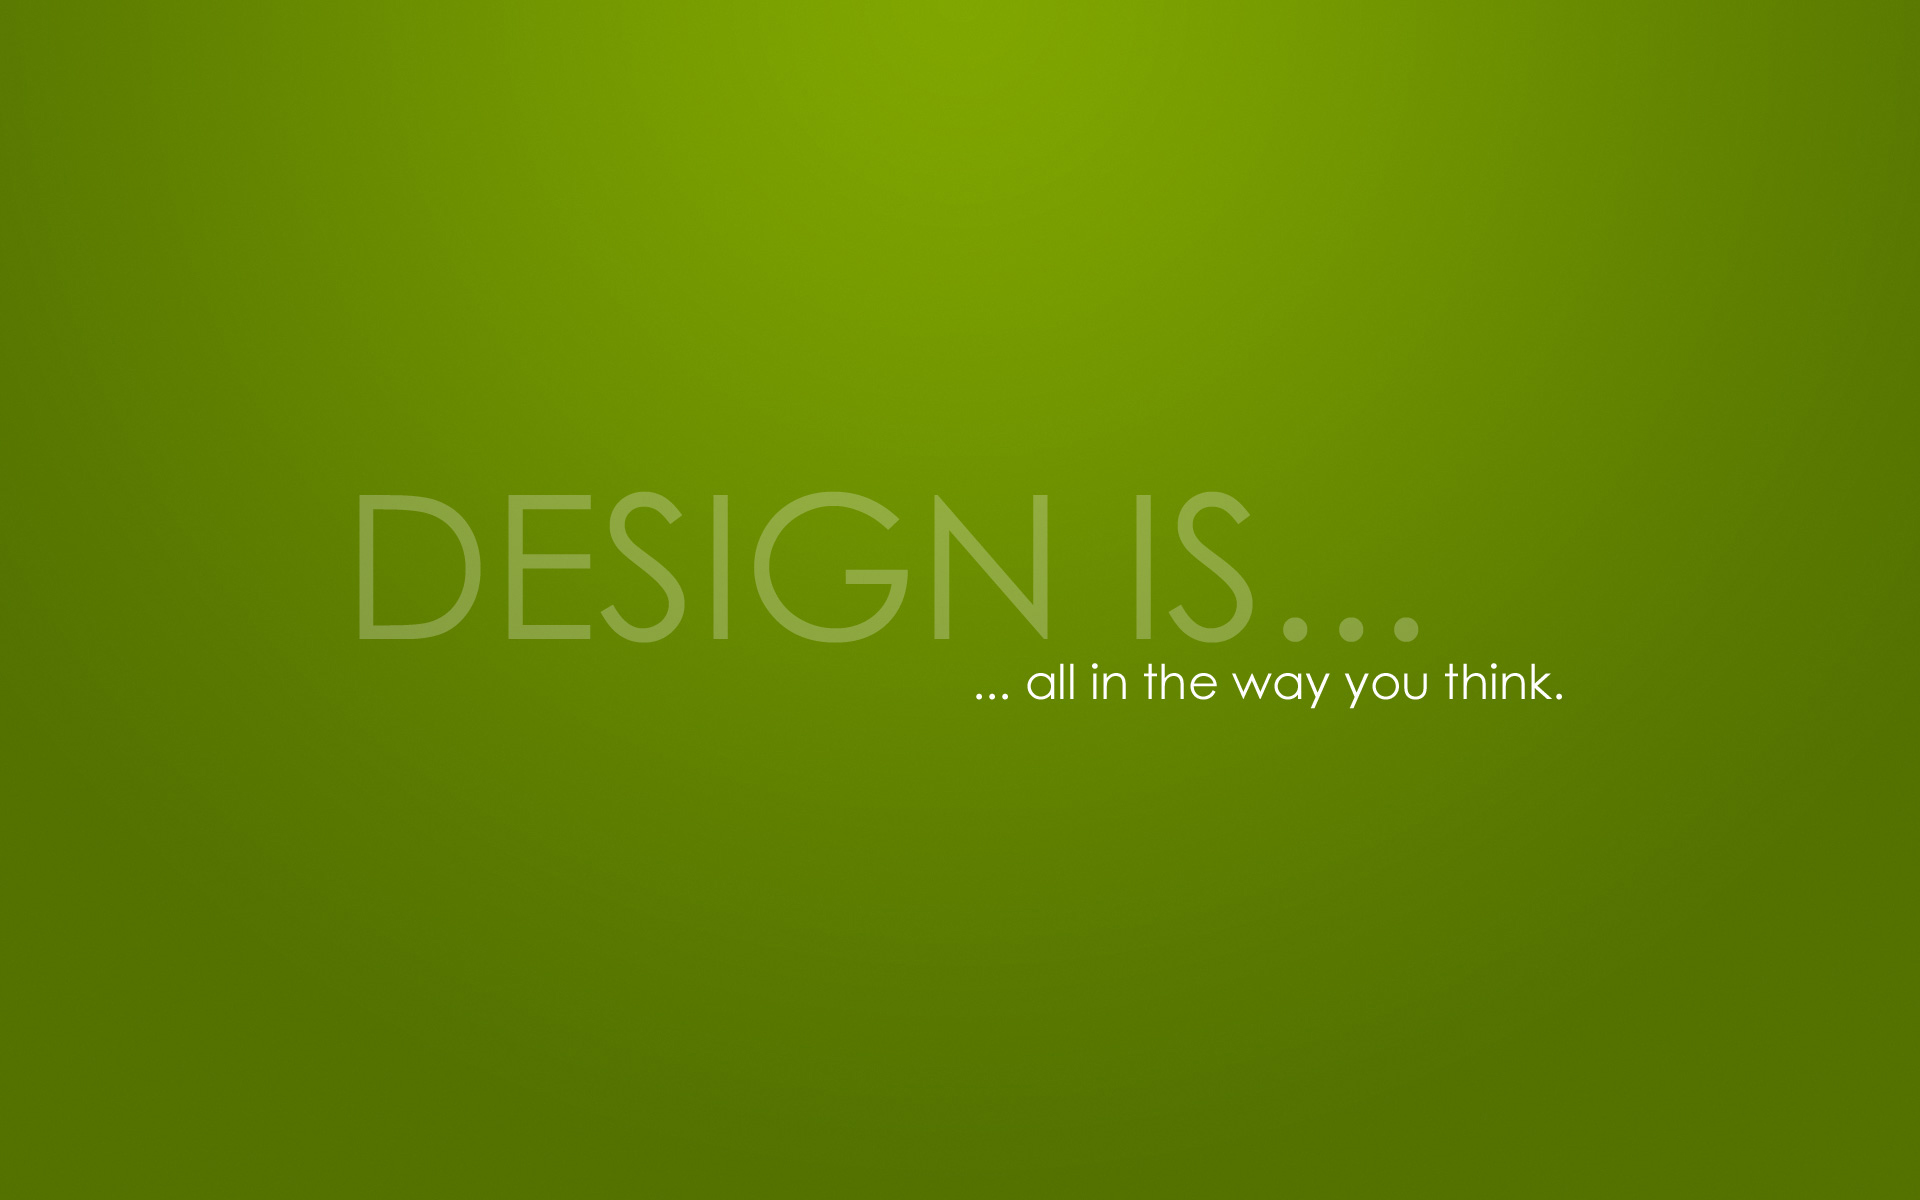 40 Web Design Wallpapers for Design Geeks Modny73 1920x1200